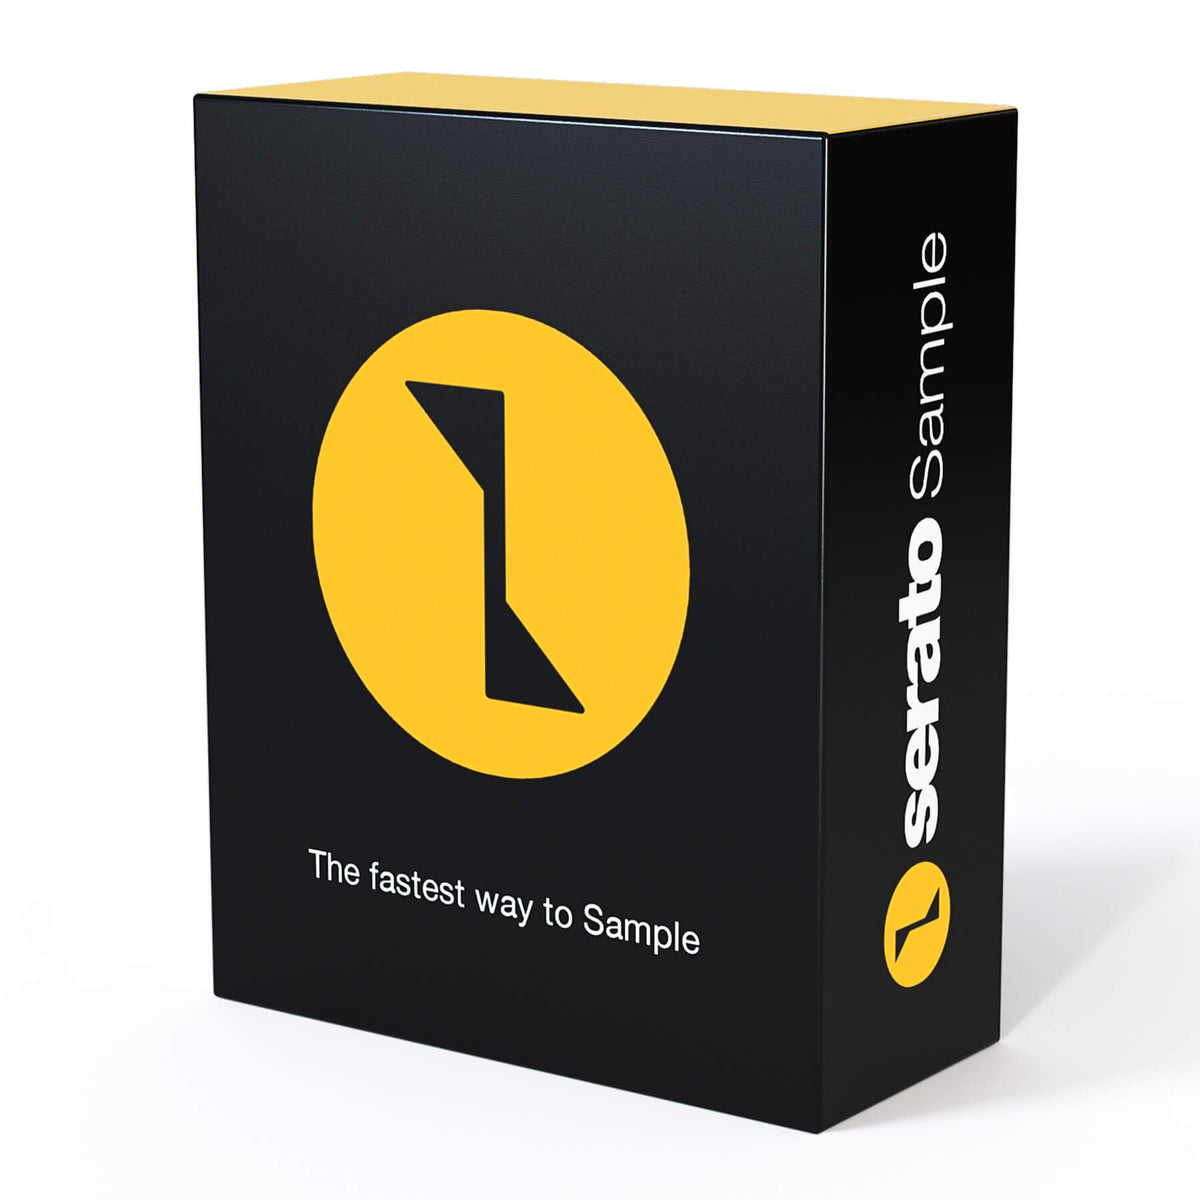 Serato Sample (Digital Download)